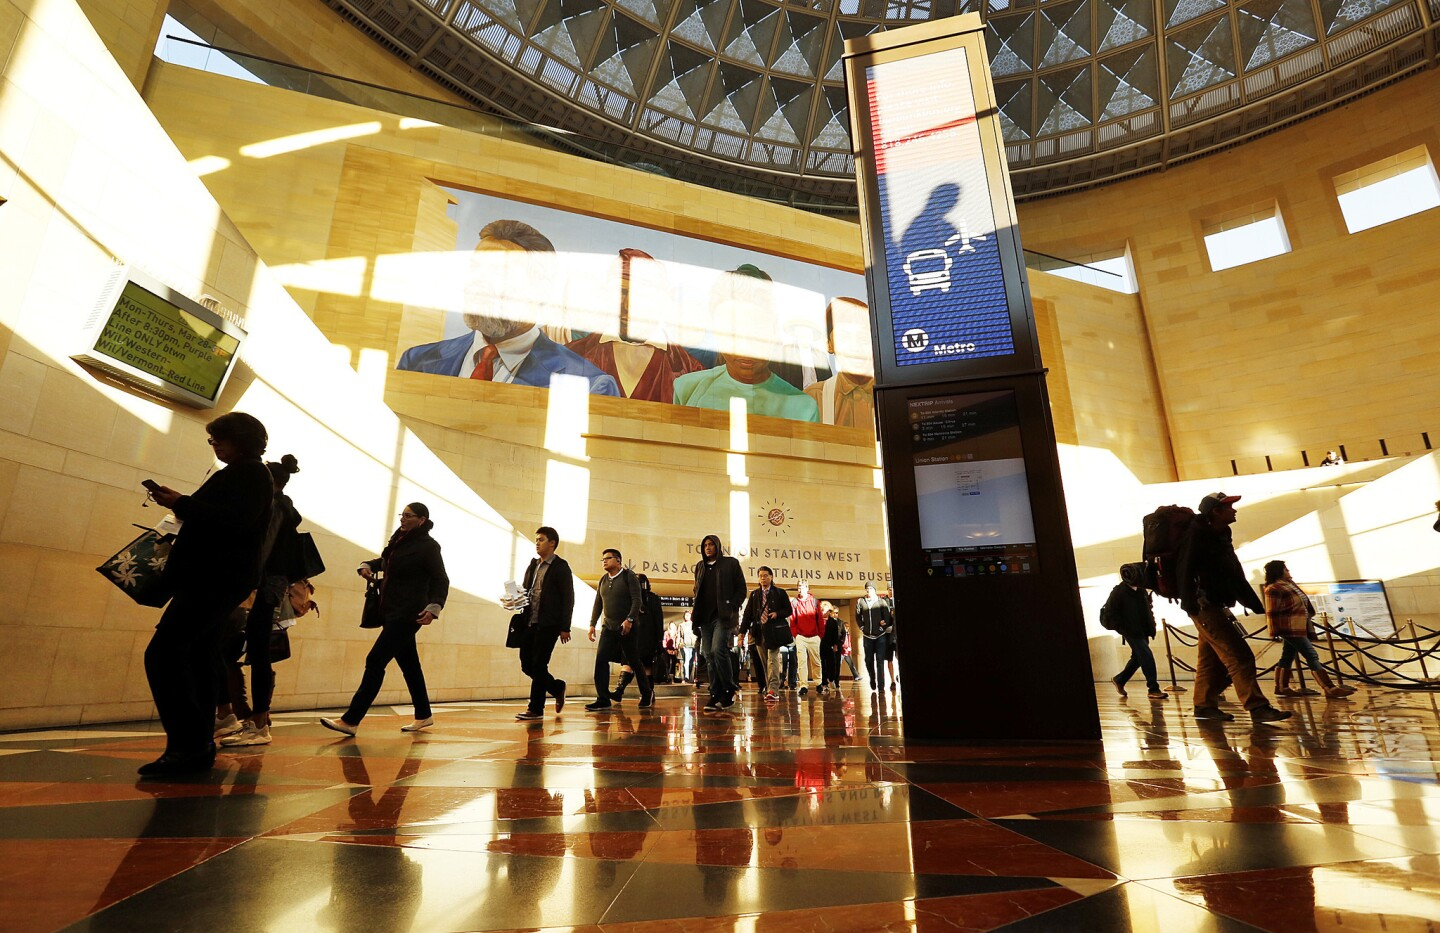 Passengers pass the new information kiosk in the Patsaouras Transit Plaza at historic Union Station, which officials hope to expand from a transit hub to more of an urban destination.